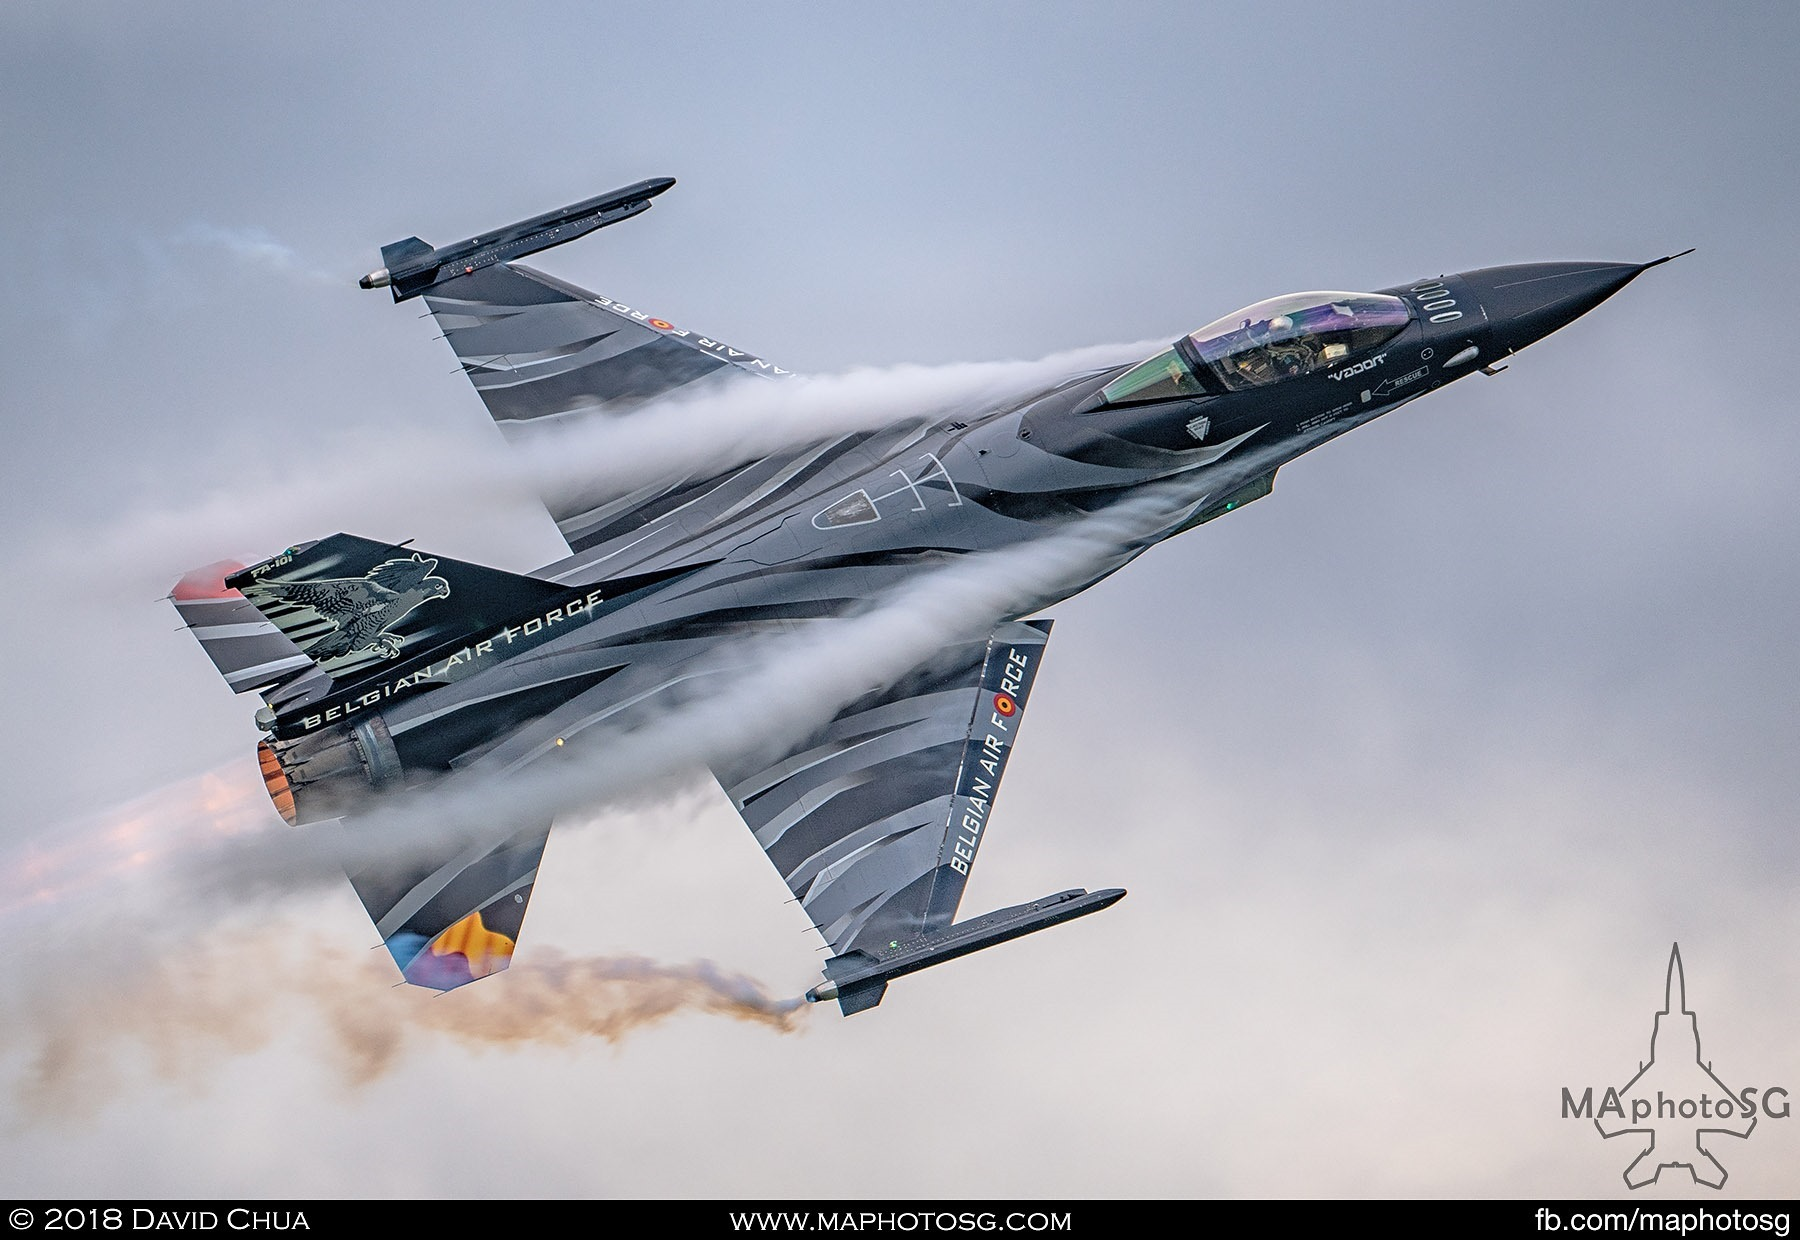 50. Dark Falcon of the Belgium Air Force F-16 Solo Display Team piloted by Vador